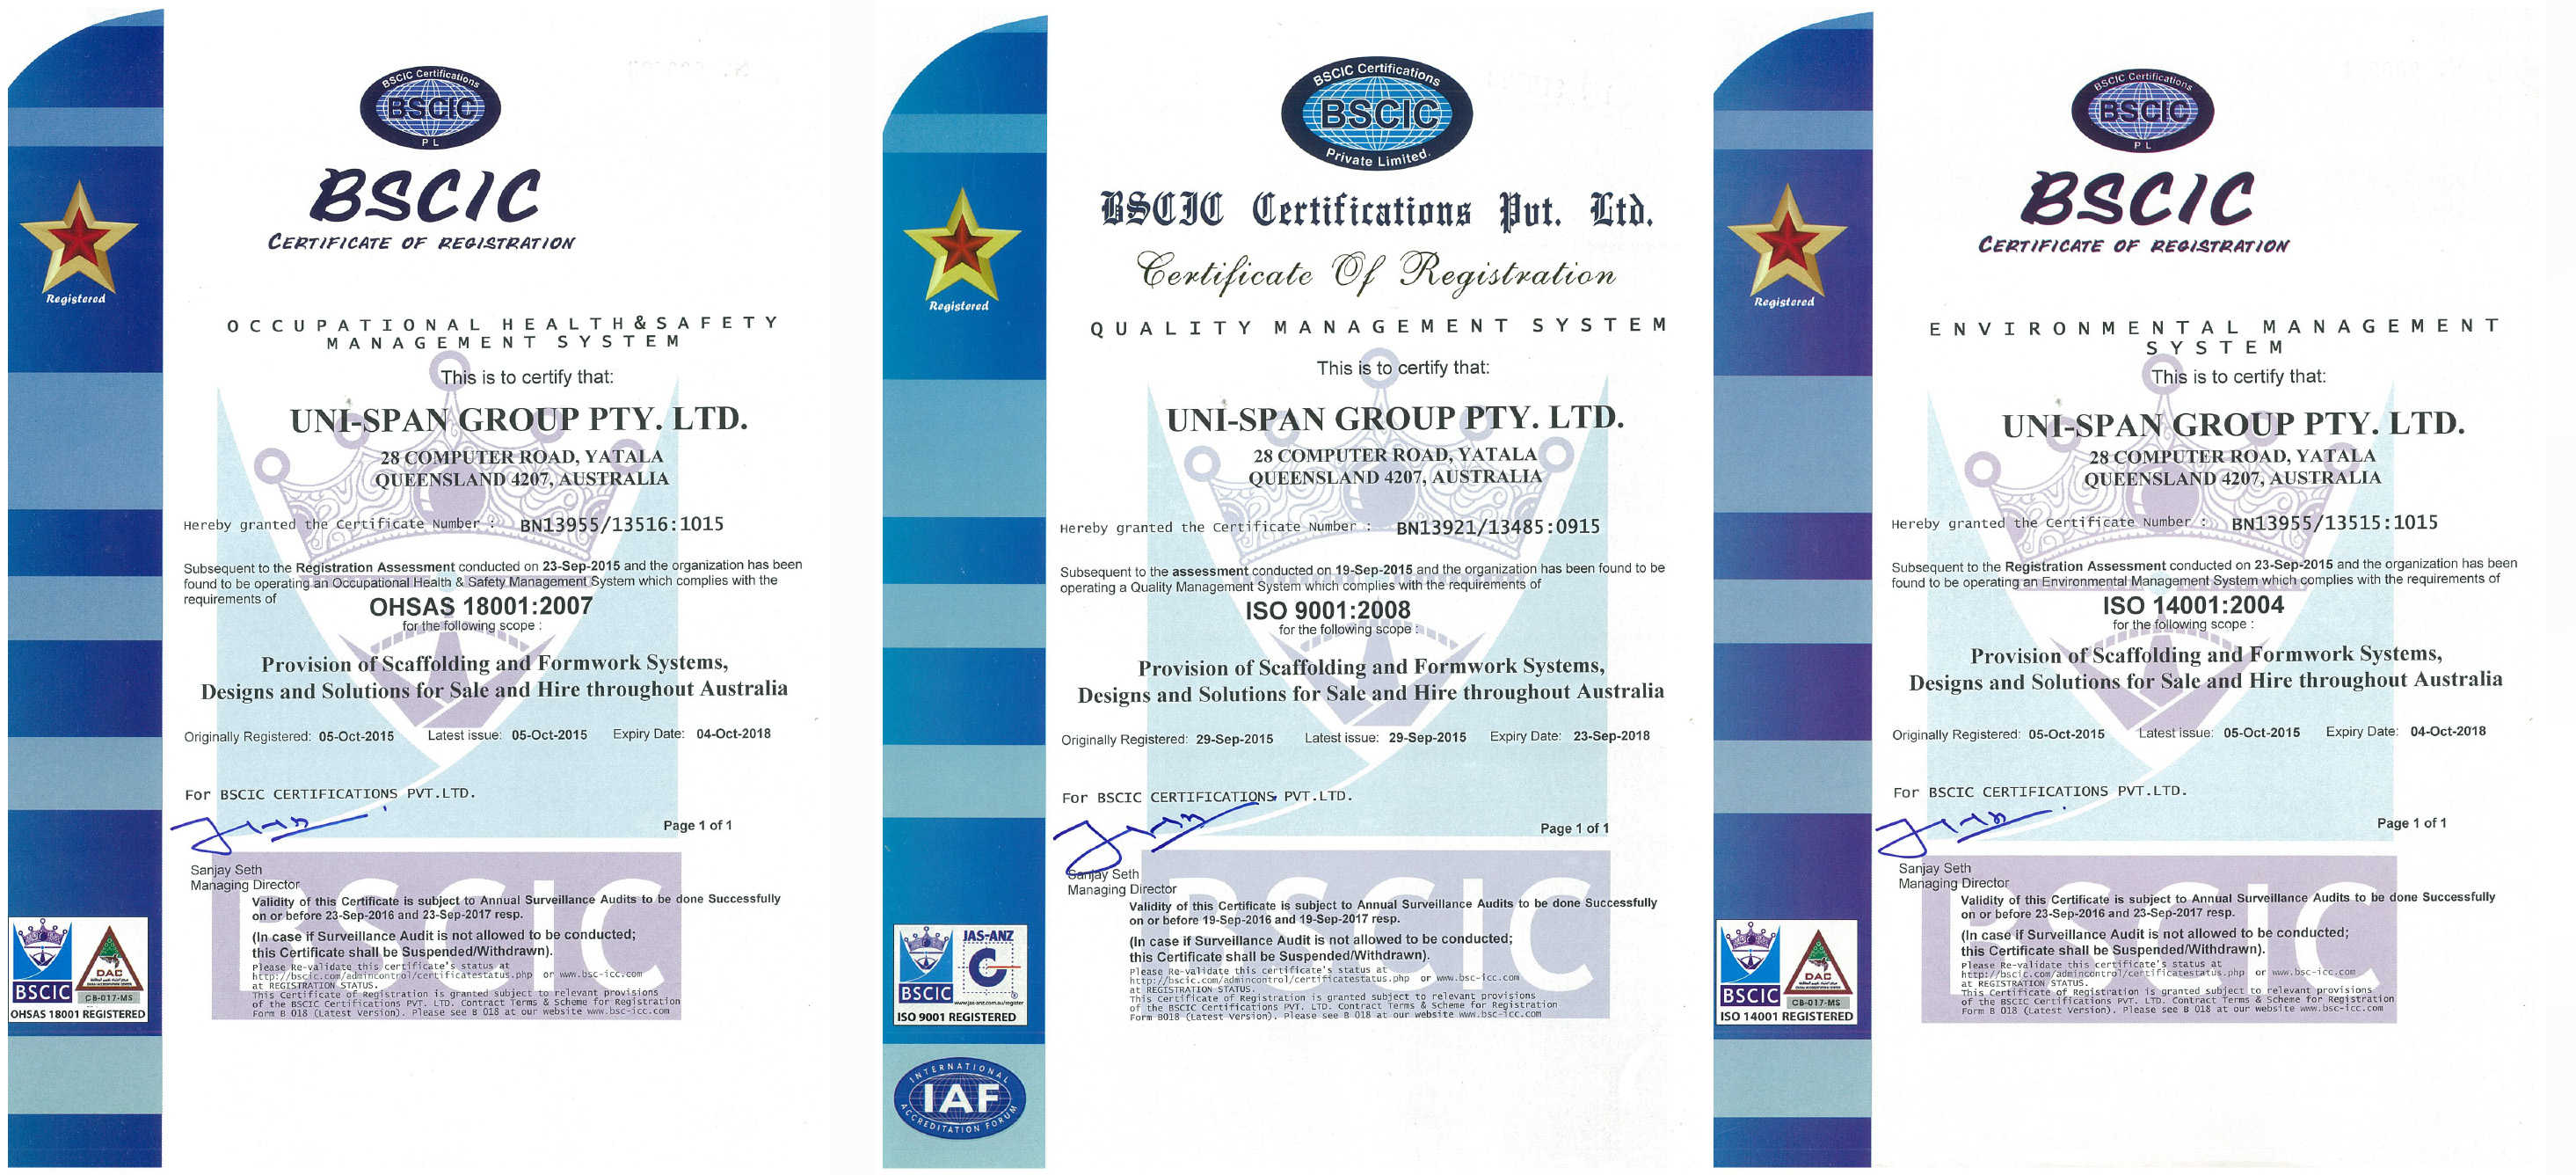 Iso Certifications For Uni Span